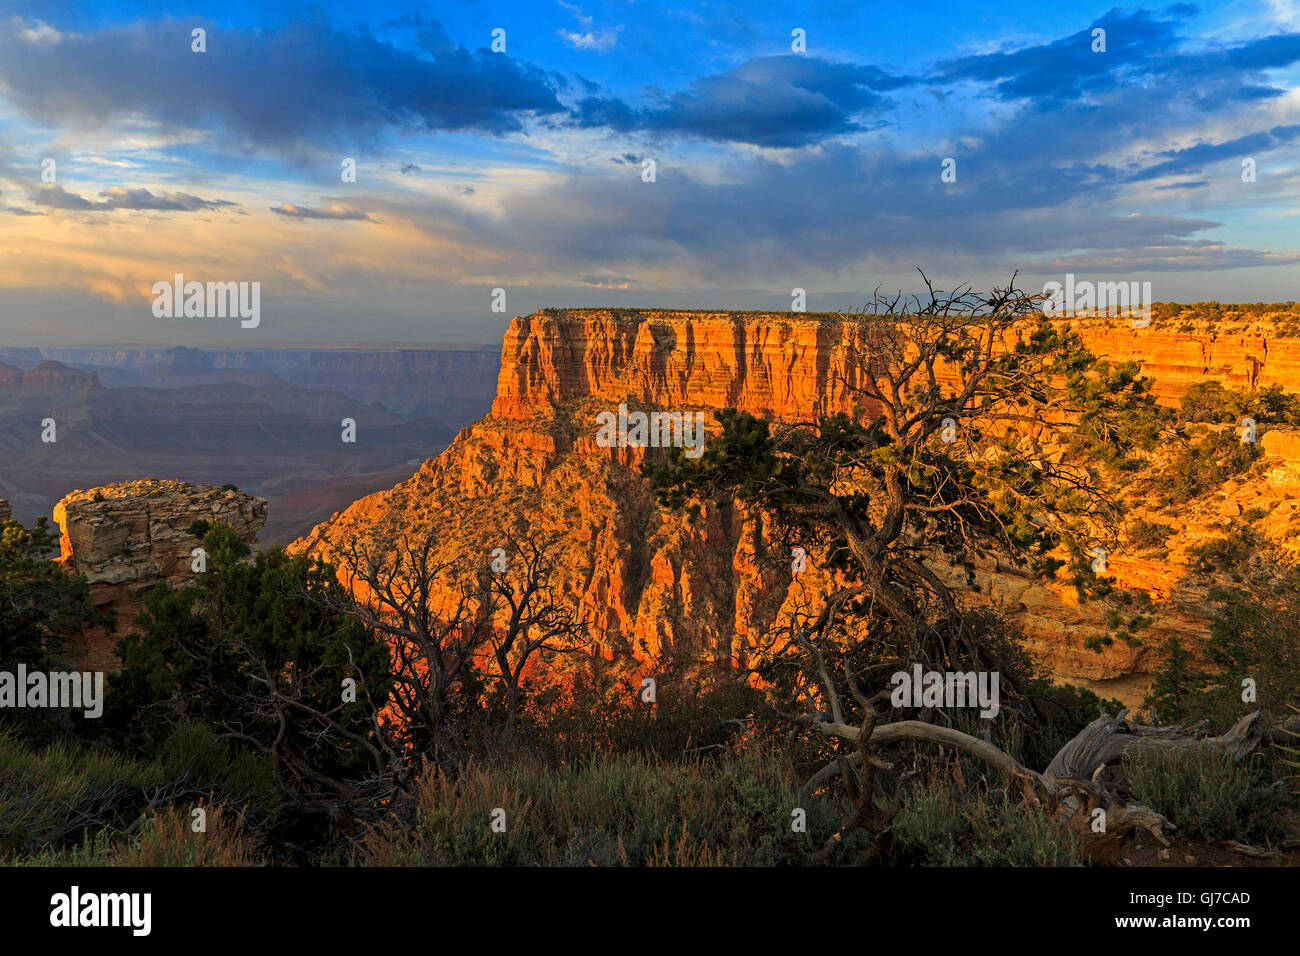 An impressive red rock butte from the east side of Moran Point in Grand Canyon National Park, Arizona - Stock Image